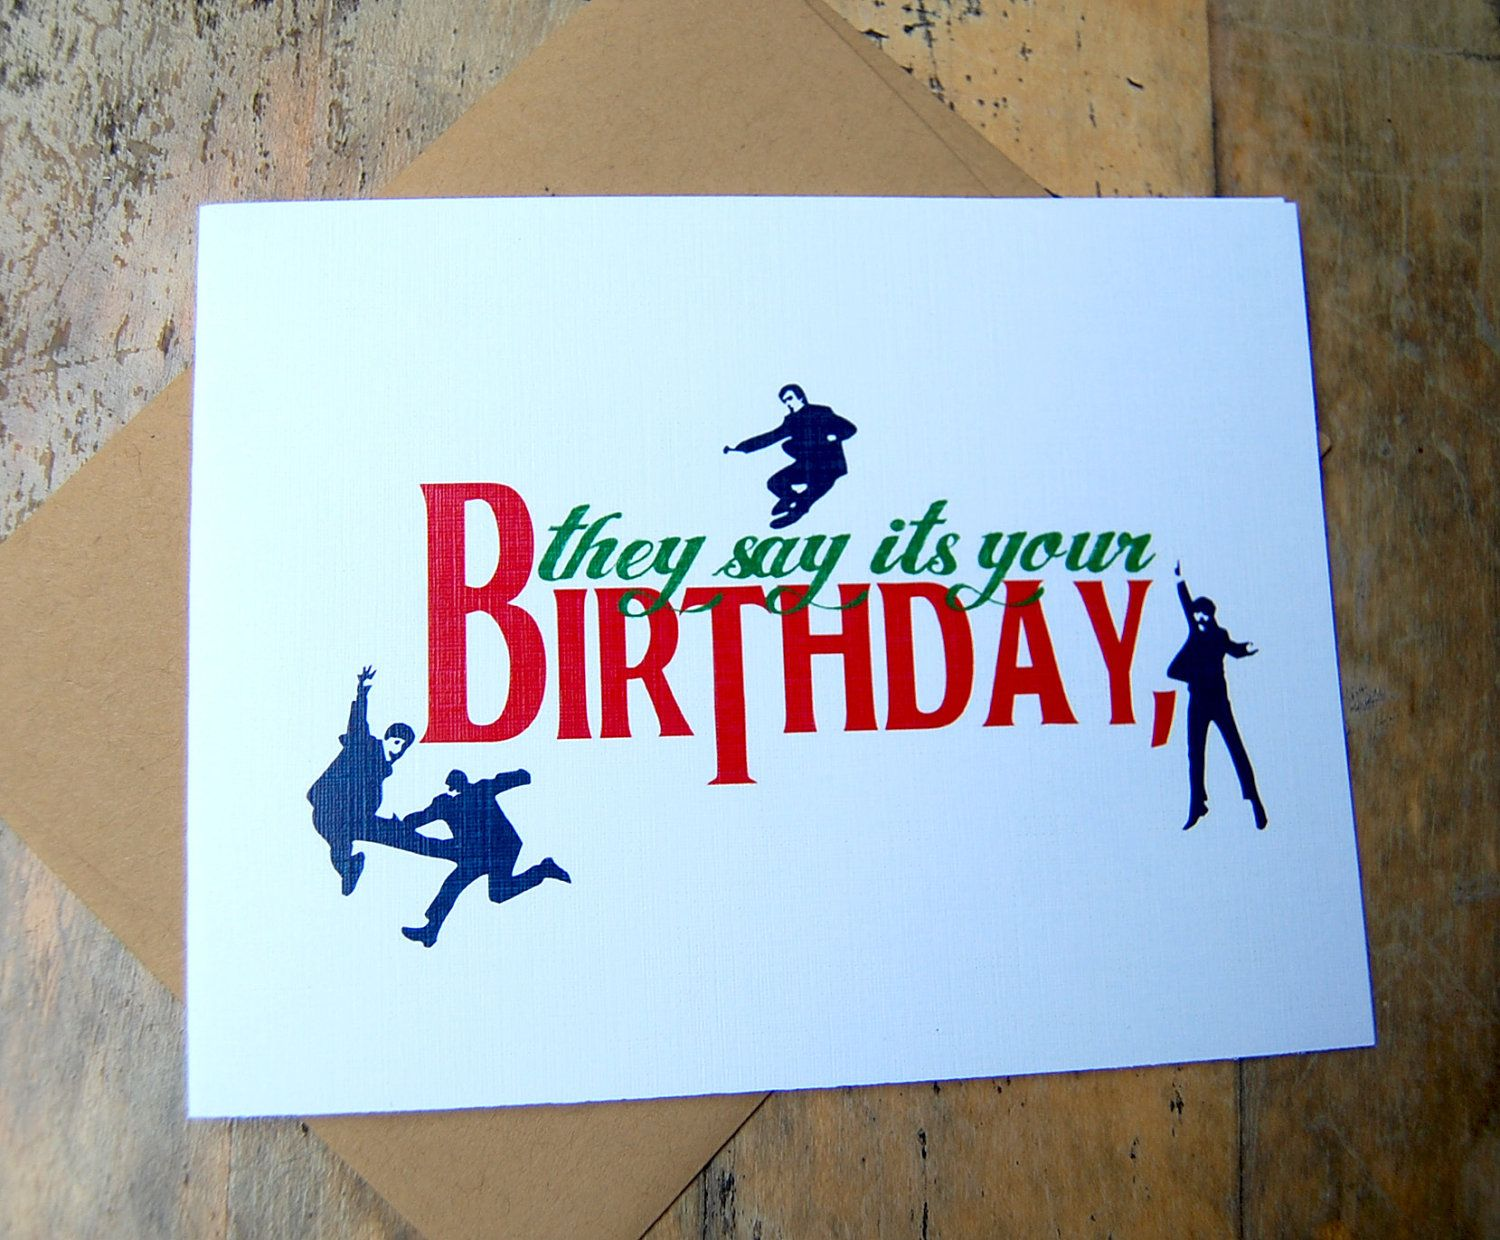 beatles today is your birthday card ; 5d30e21e17410f4bf5ee24f71619ce13